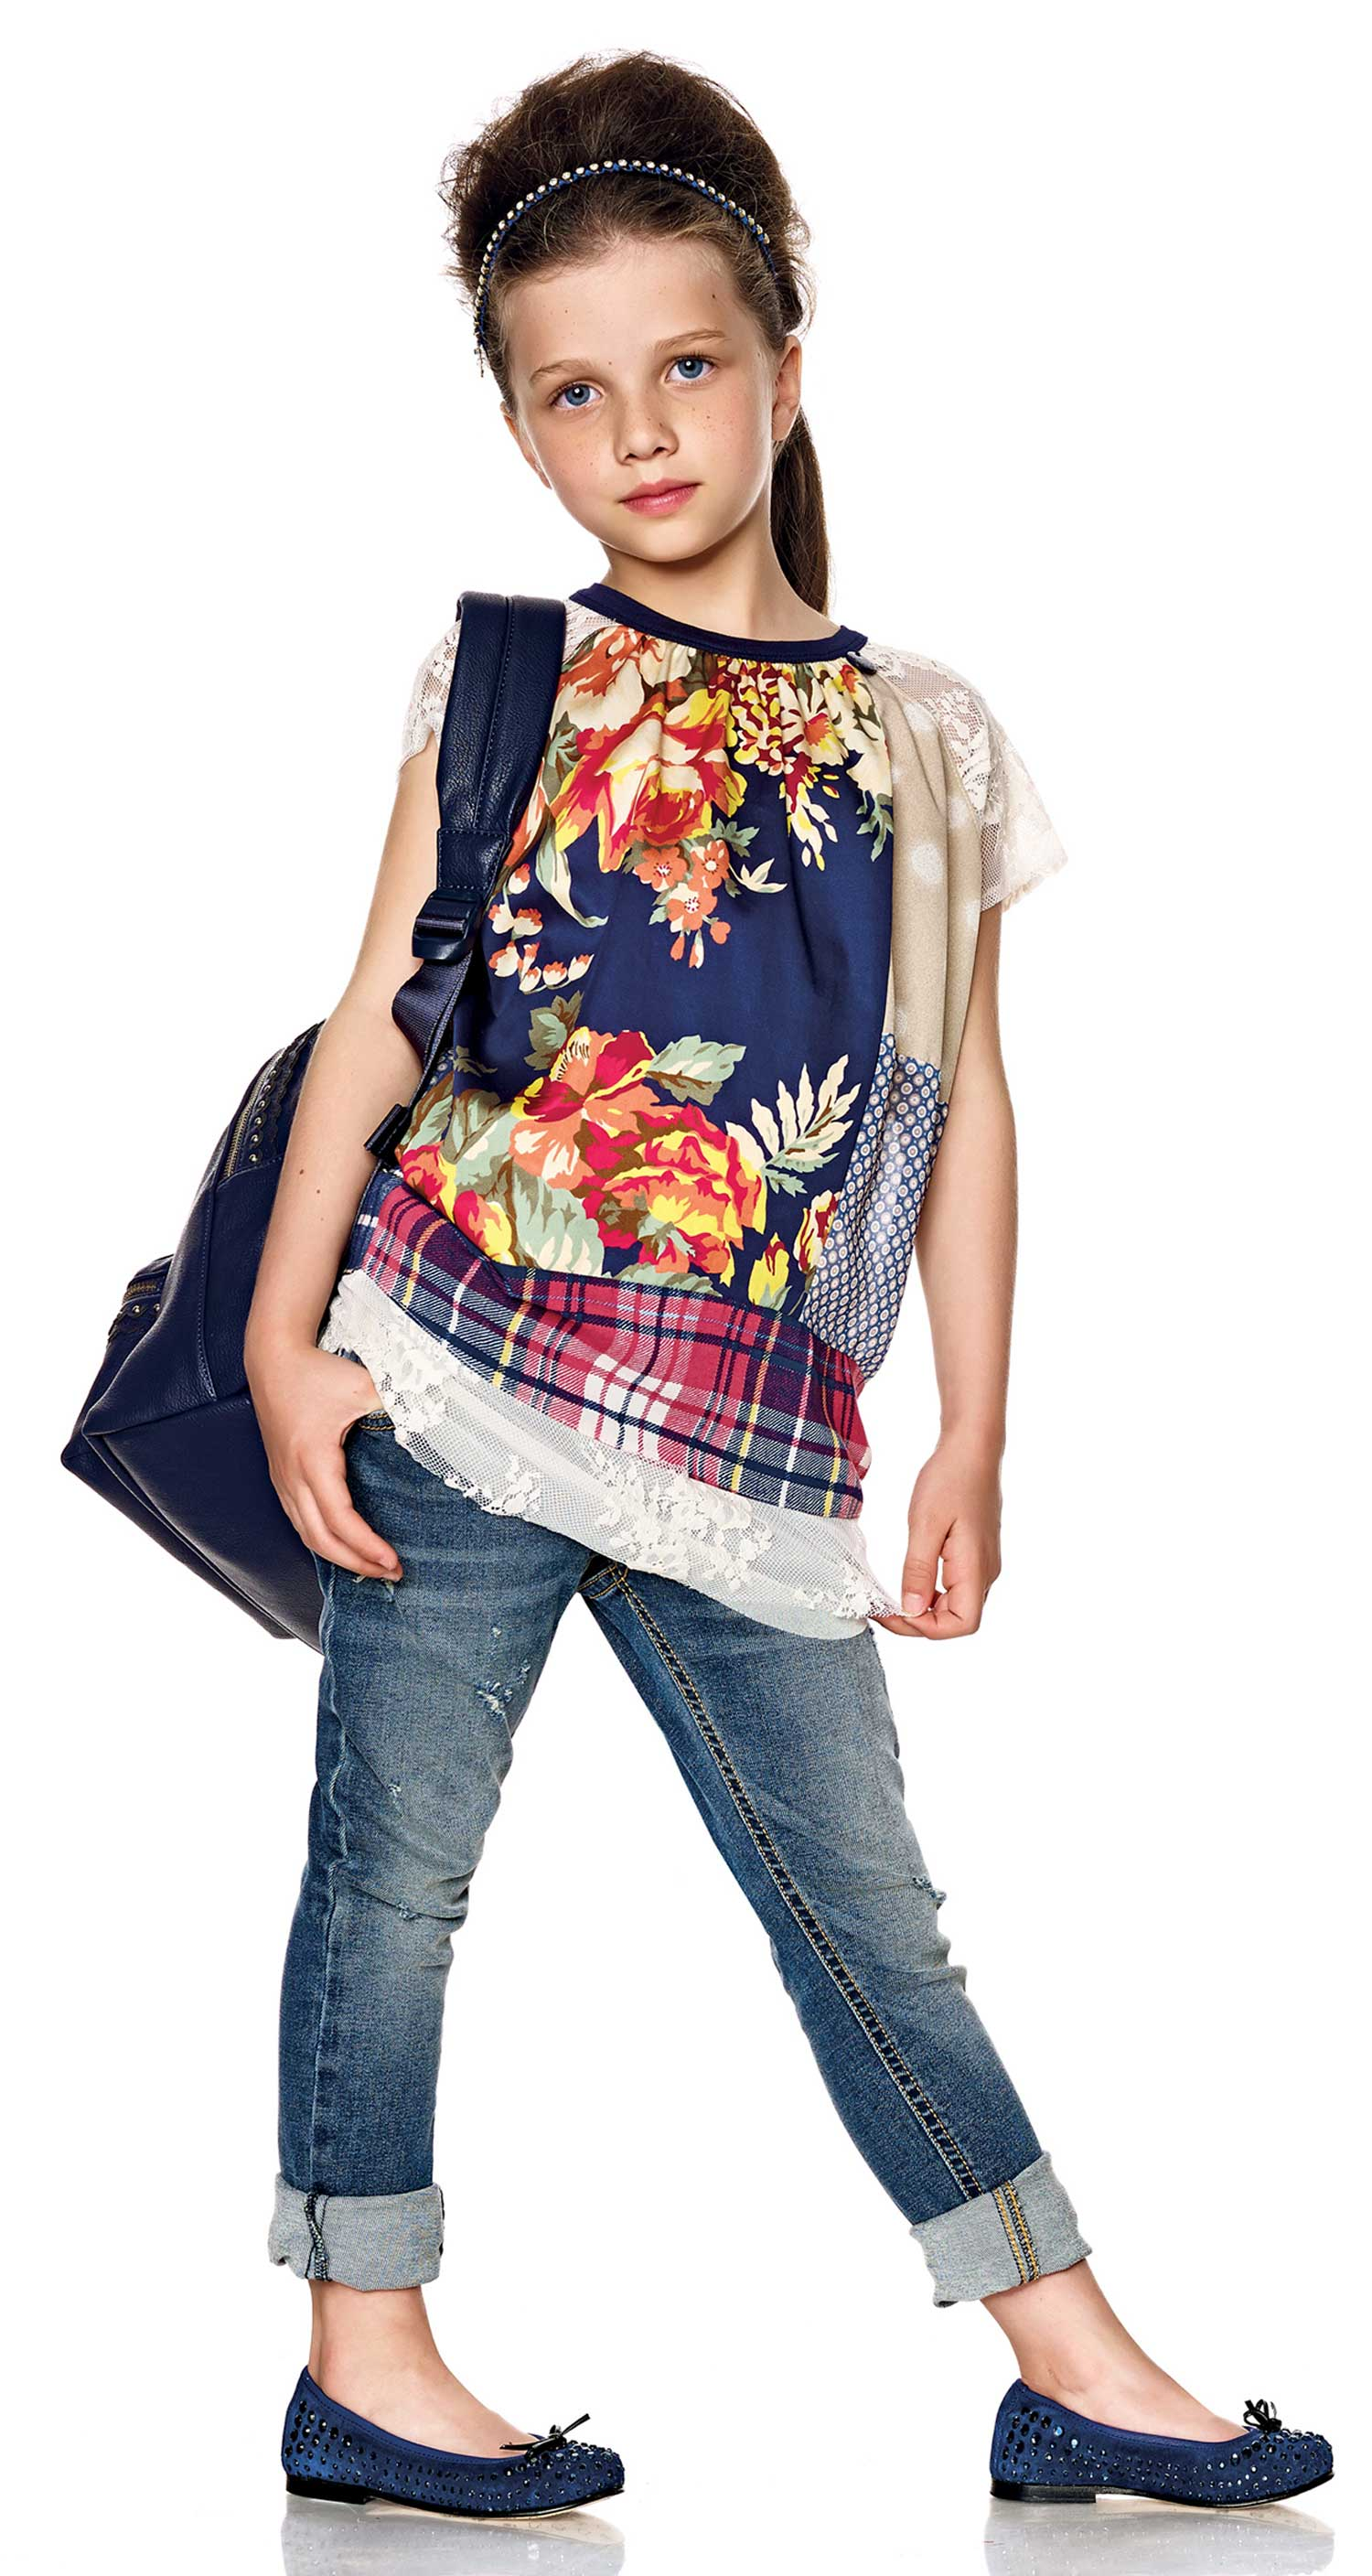 Twin-set Girl Spring Summer 2014, floral print blouse